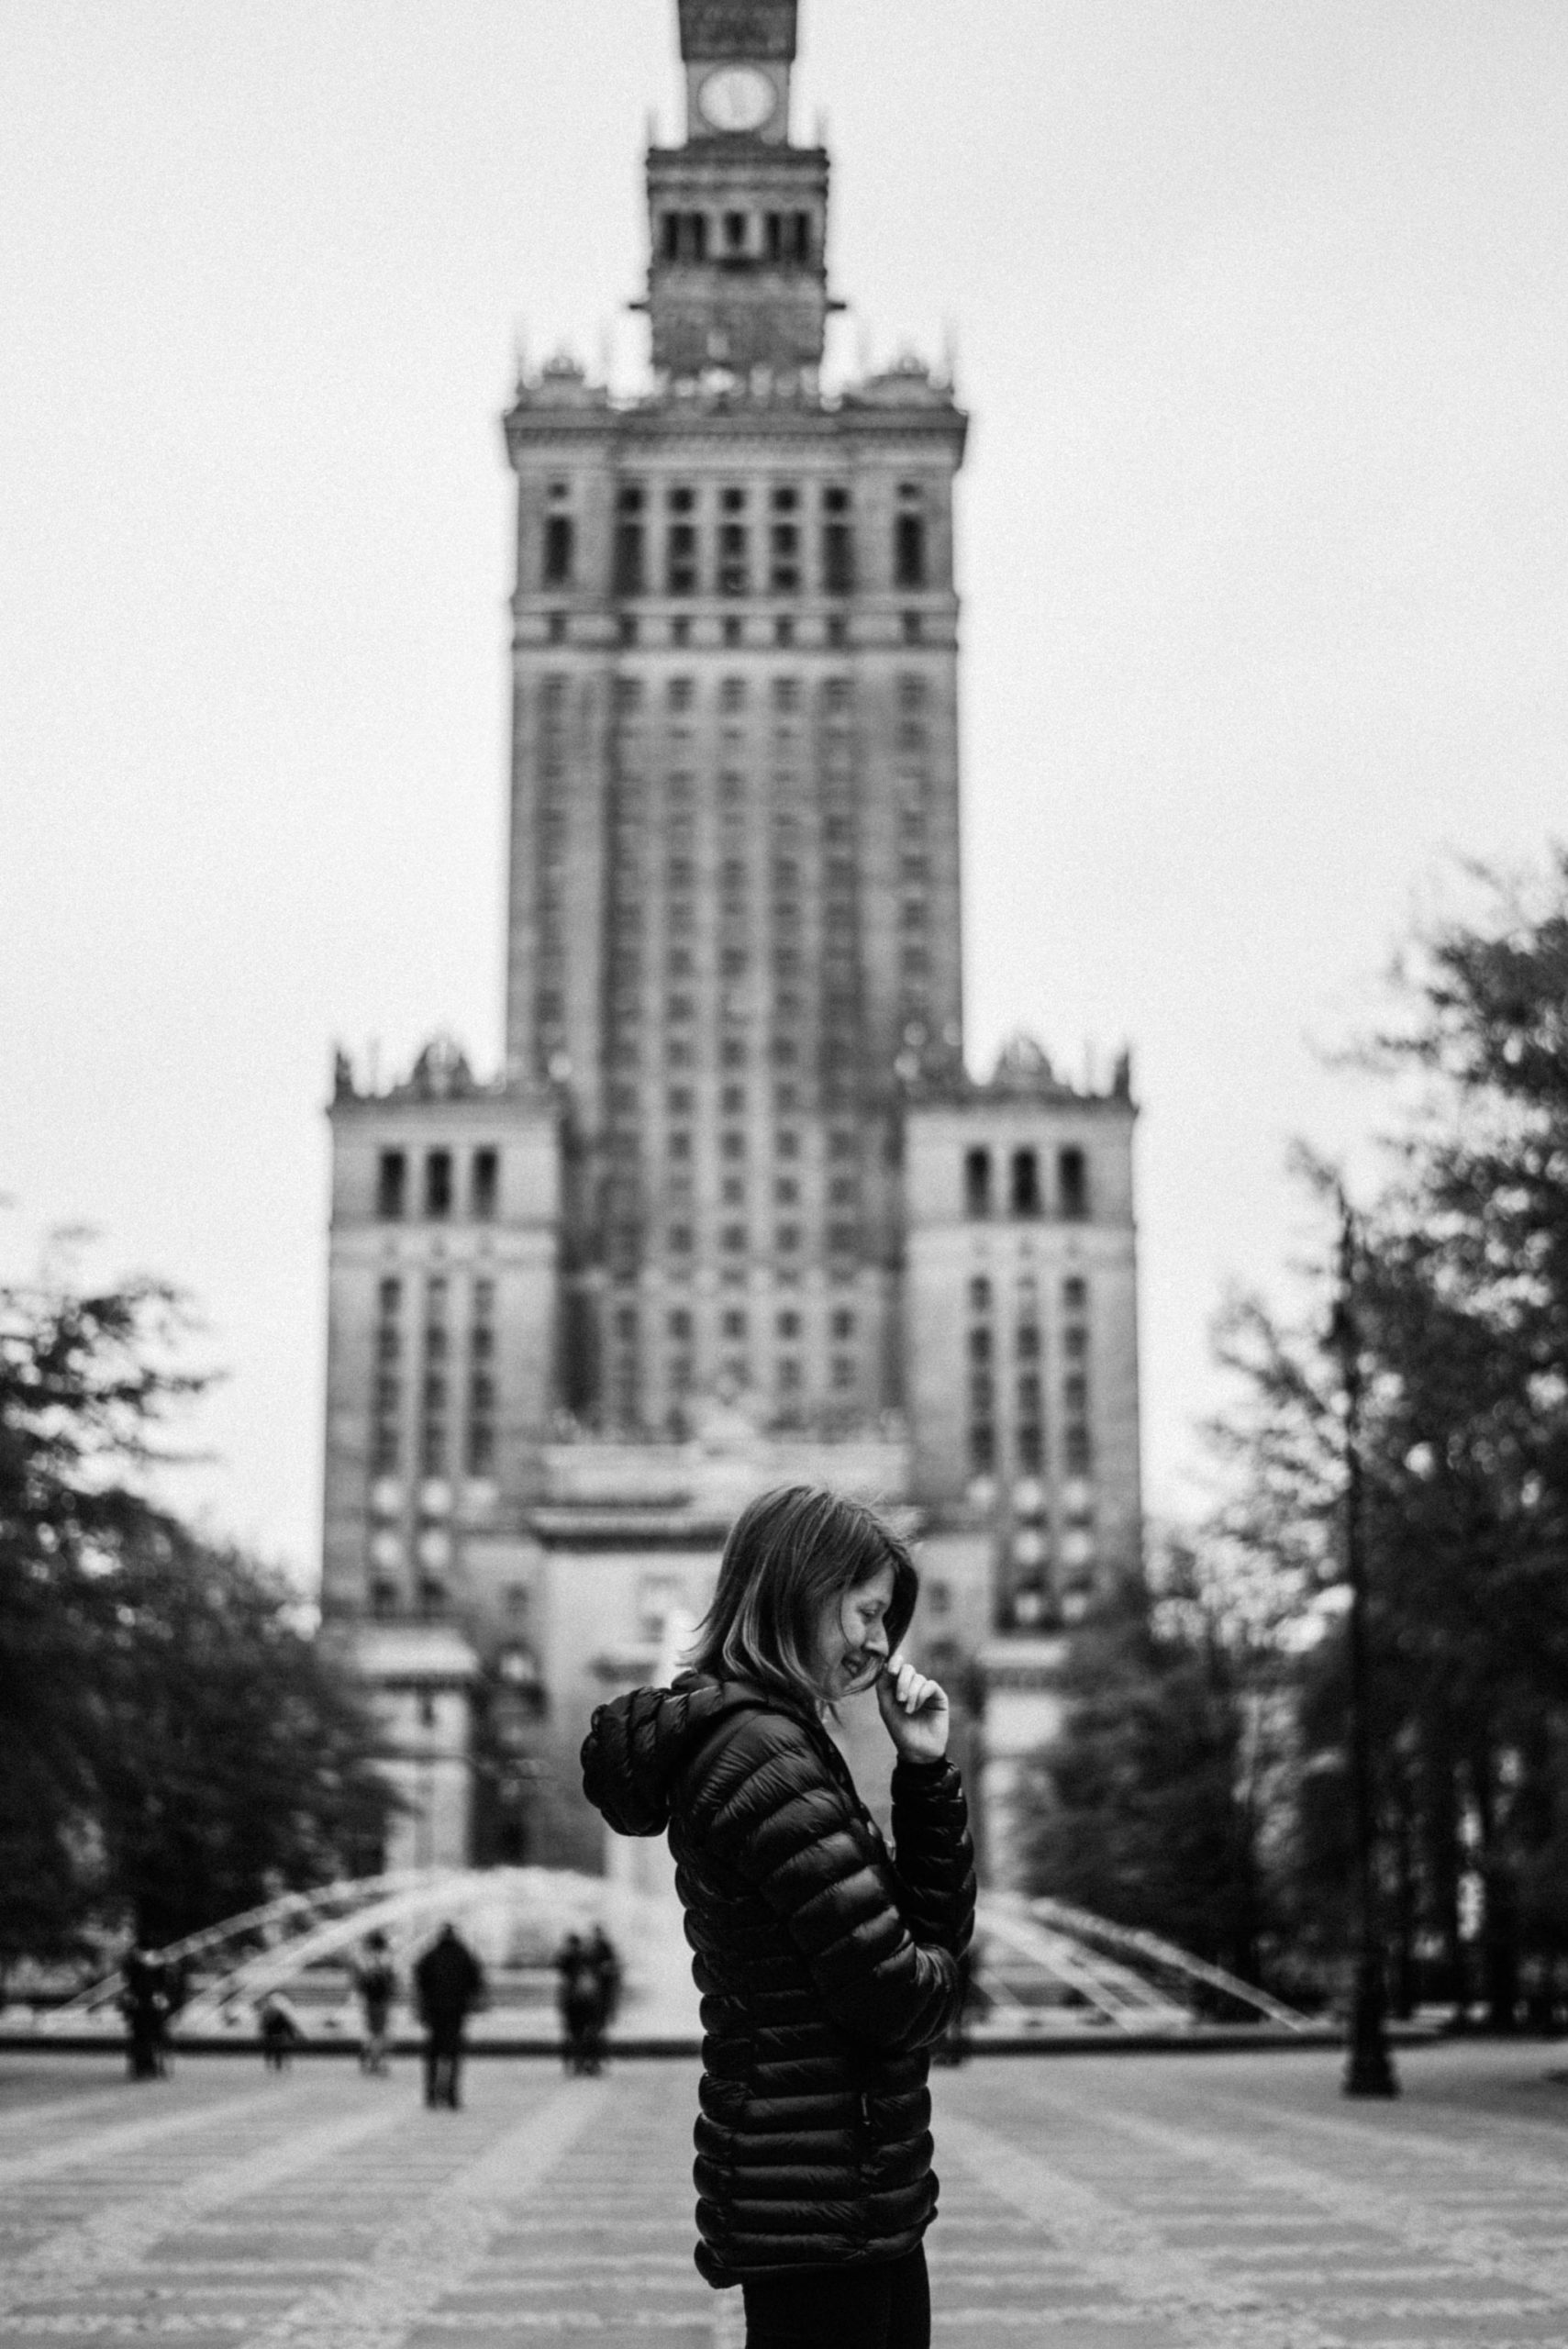 Girl in front of Warsaw palace of culture and science